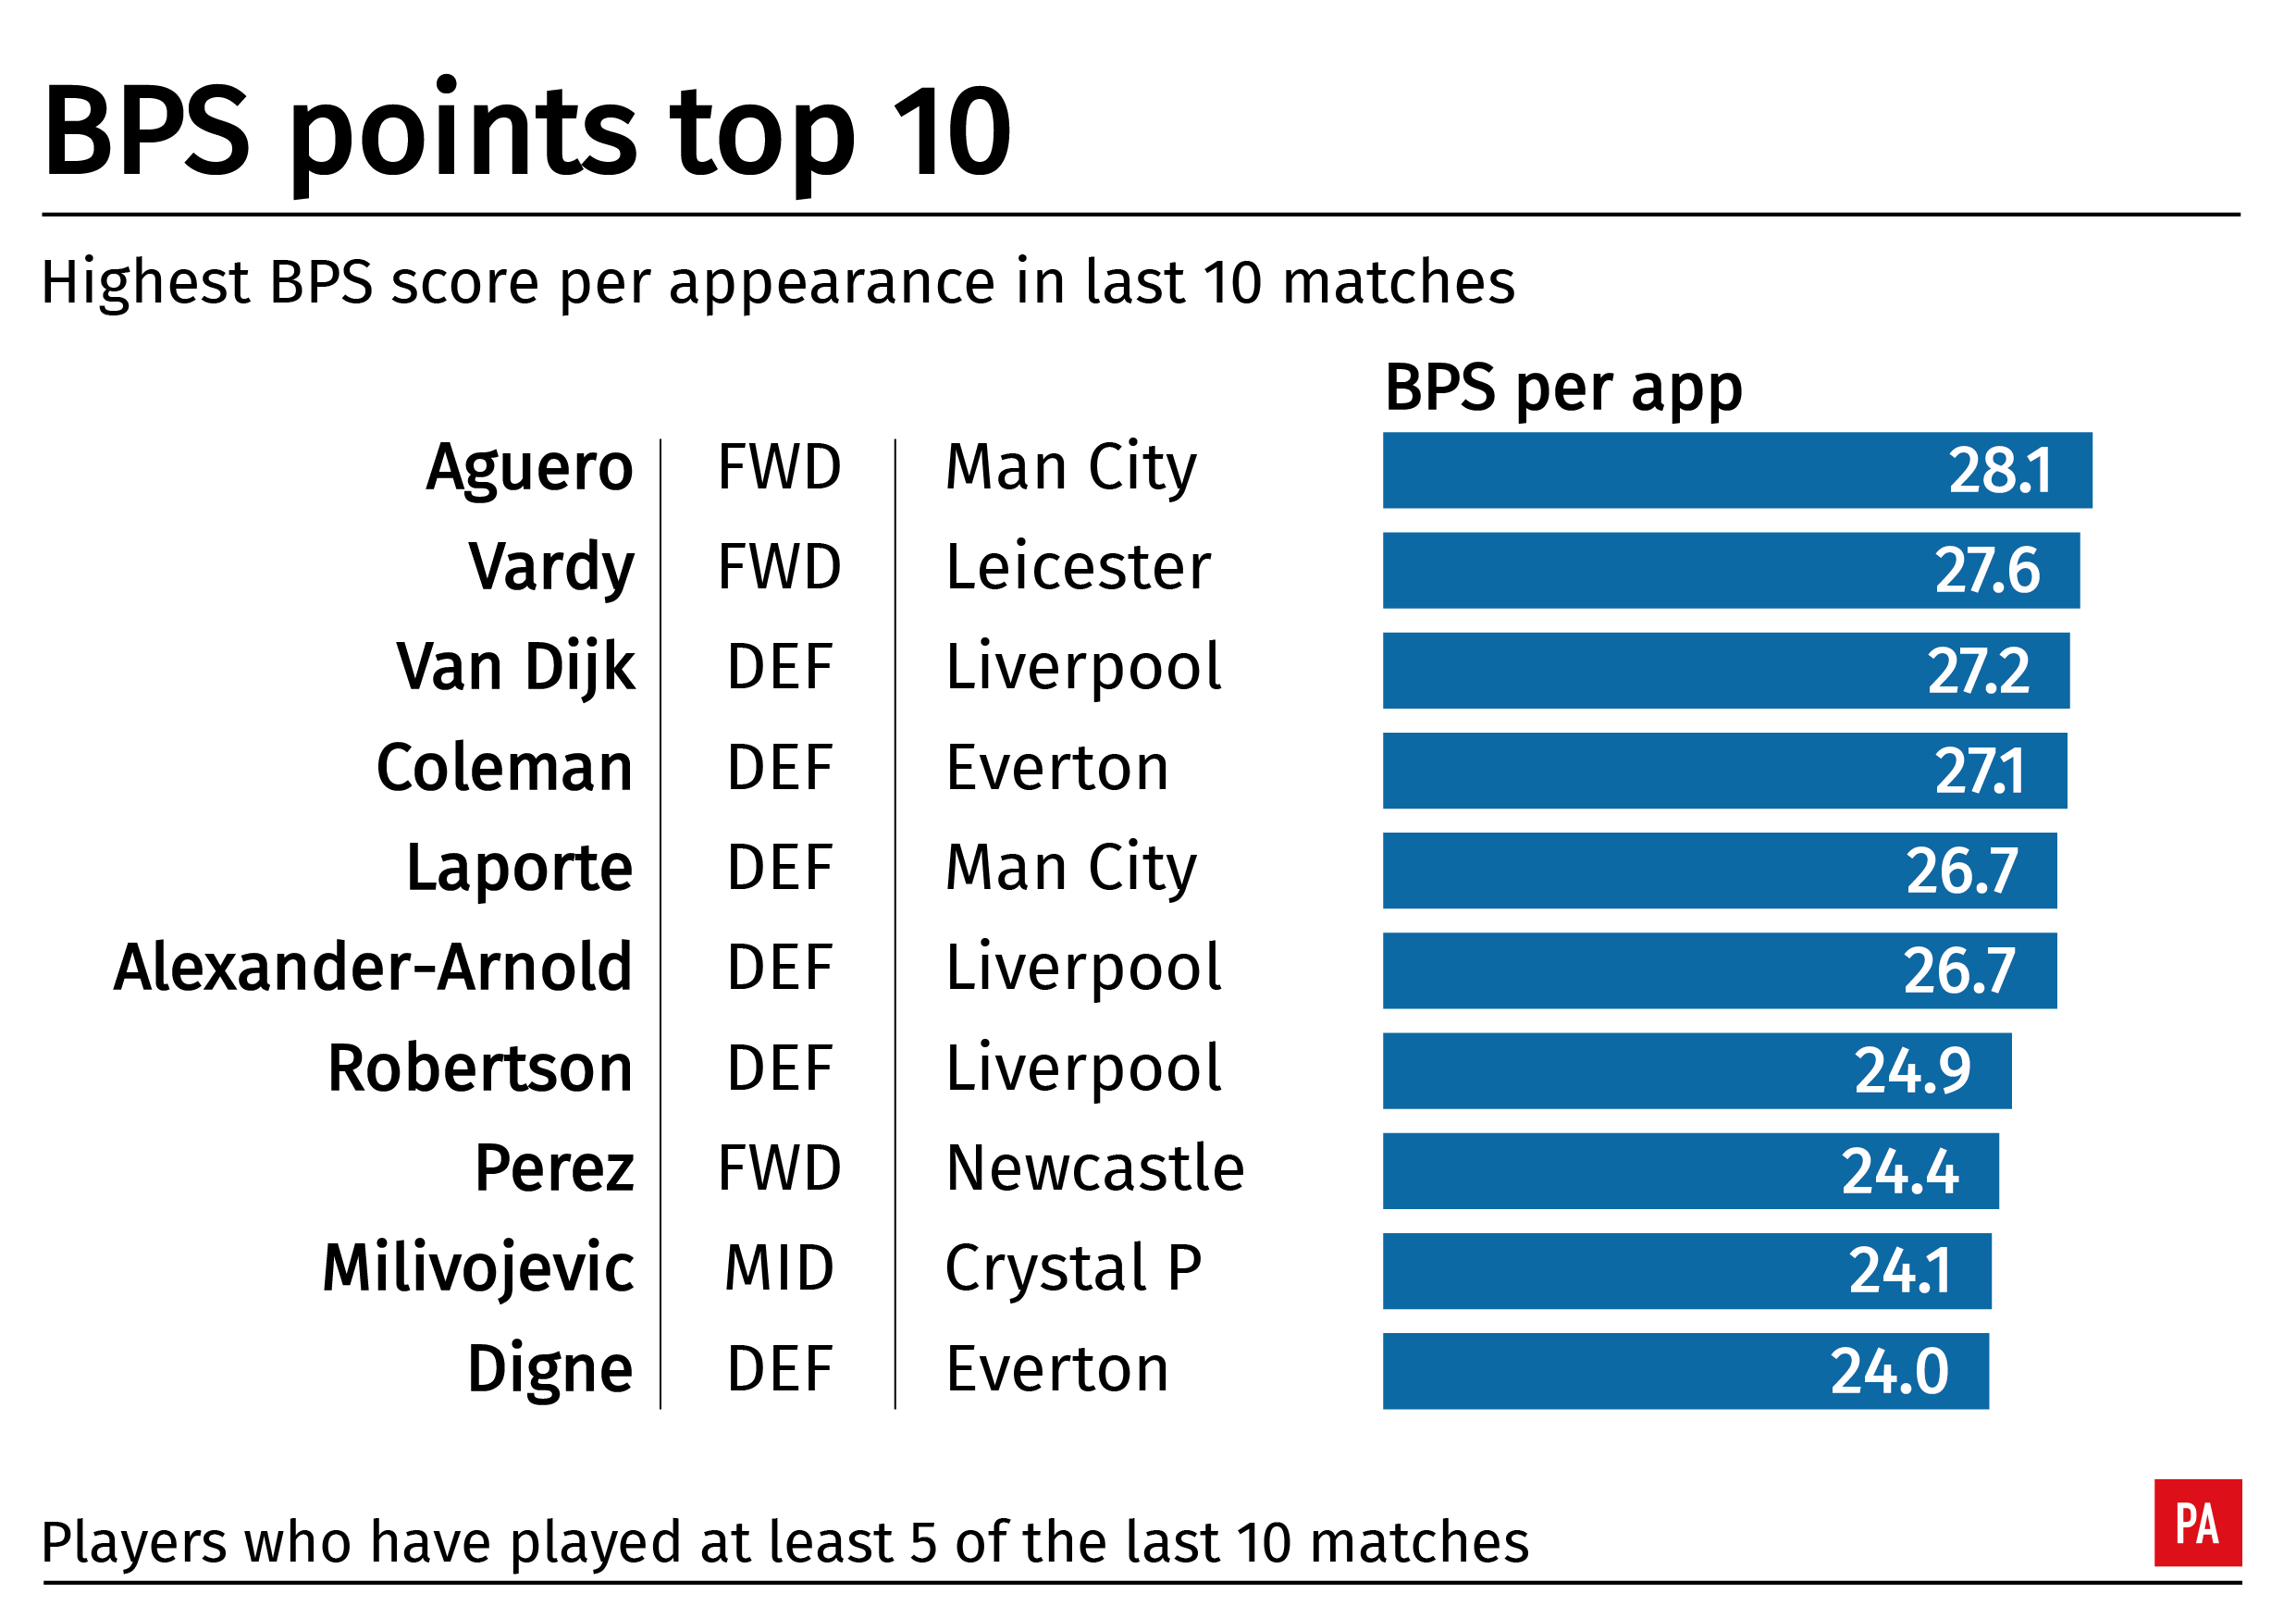 A table showing the top 10 Premier League players for average BPS score over the past 10 games